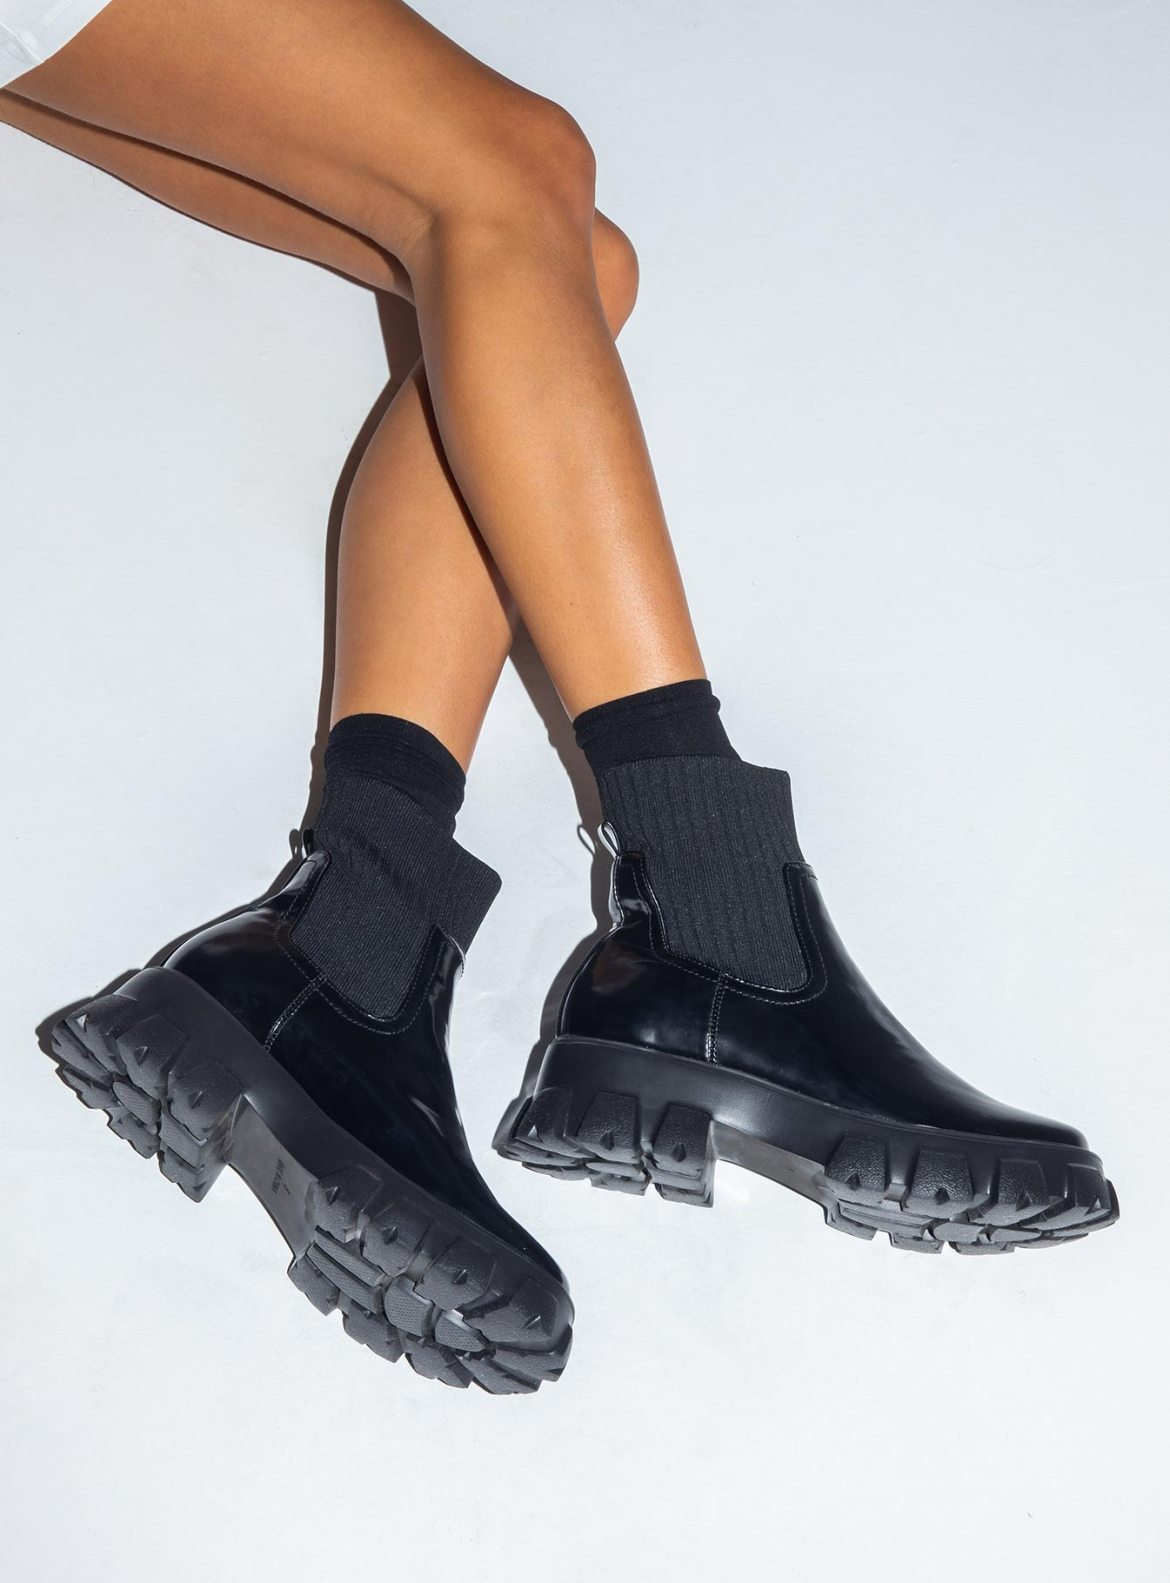 12 Women's Winter Boots You Can Wear With Any Outfit